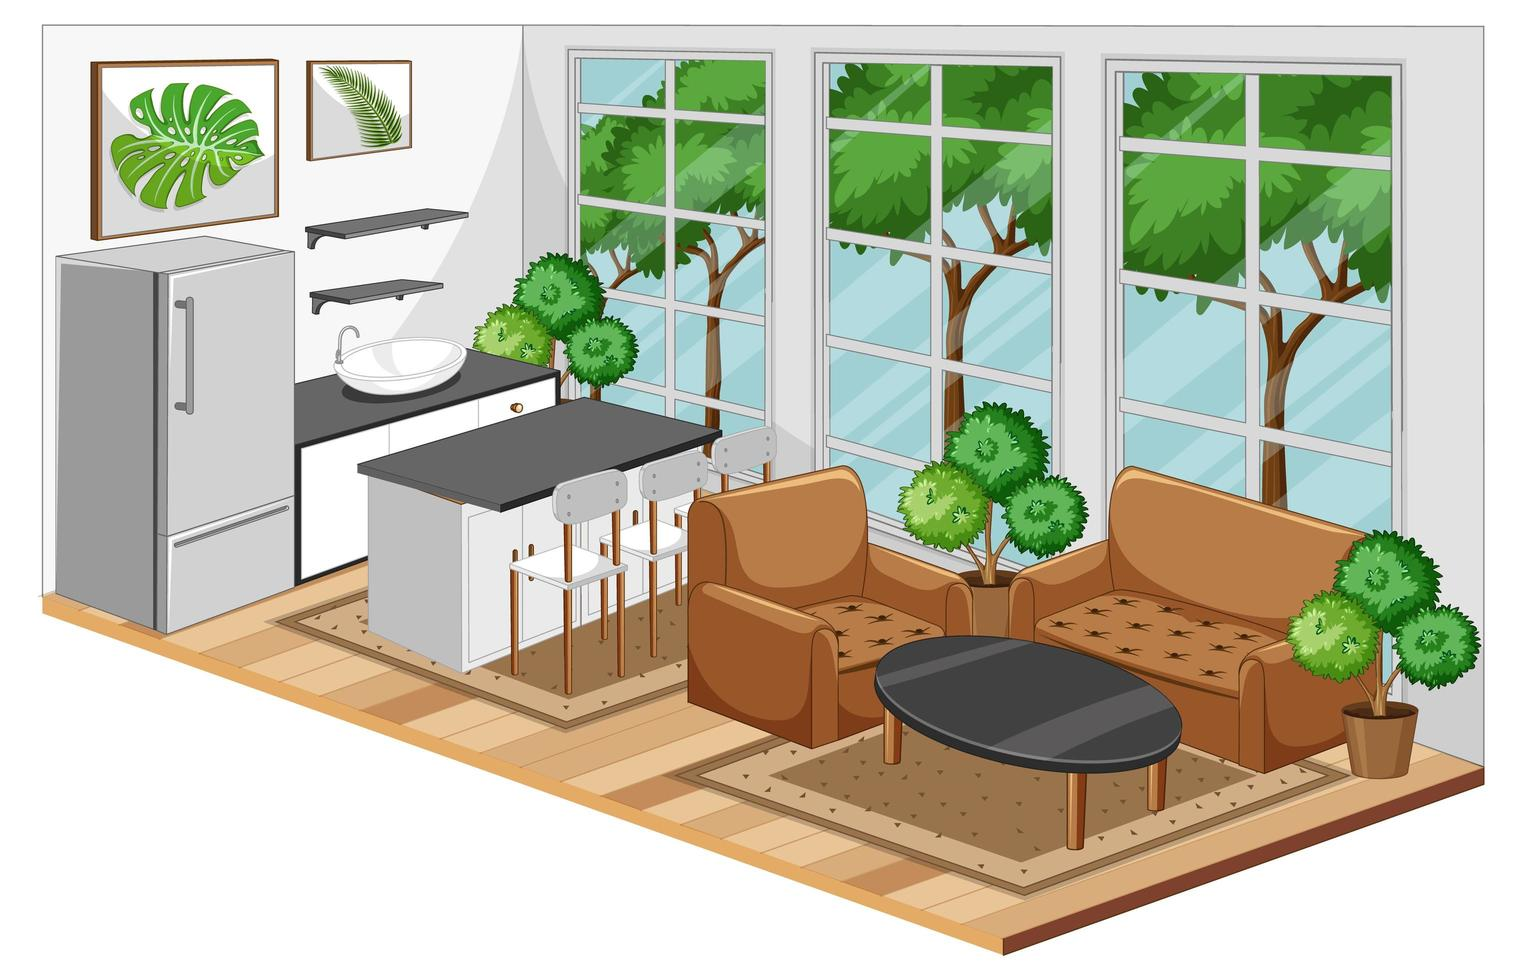 Dining room interior with furniture in modern style vector